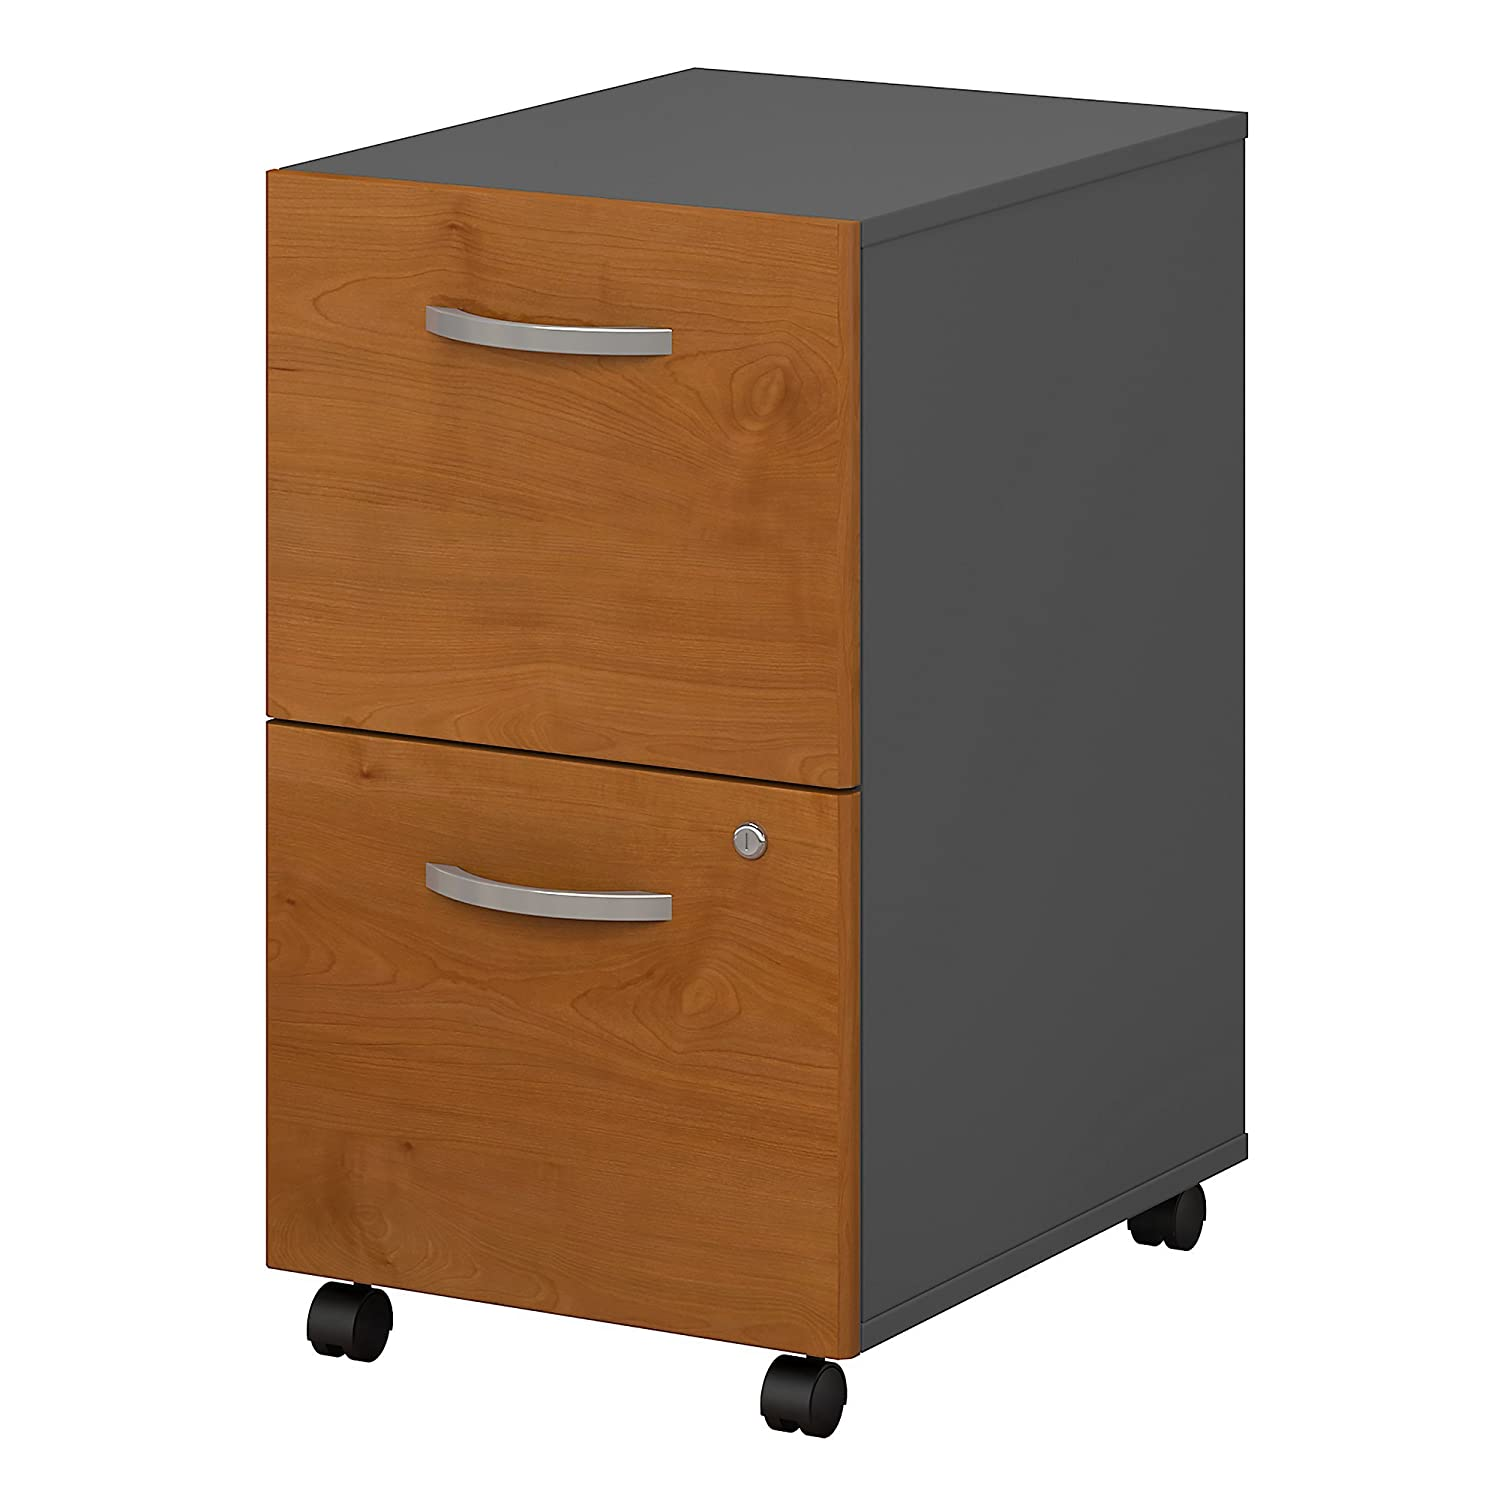 Series C Collection 2 Drawer Mobile Pedestal Bush Furniture WC48552